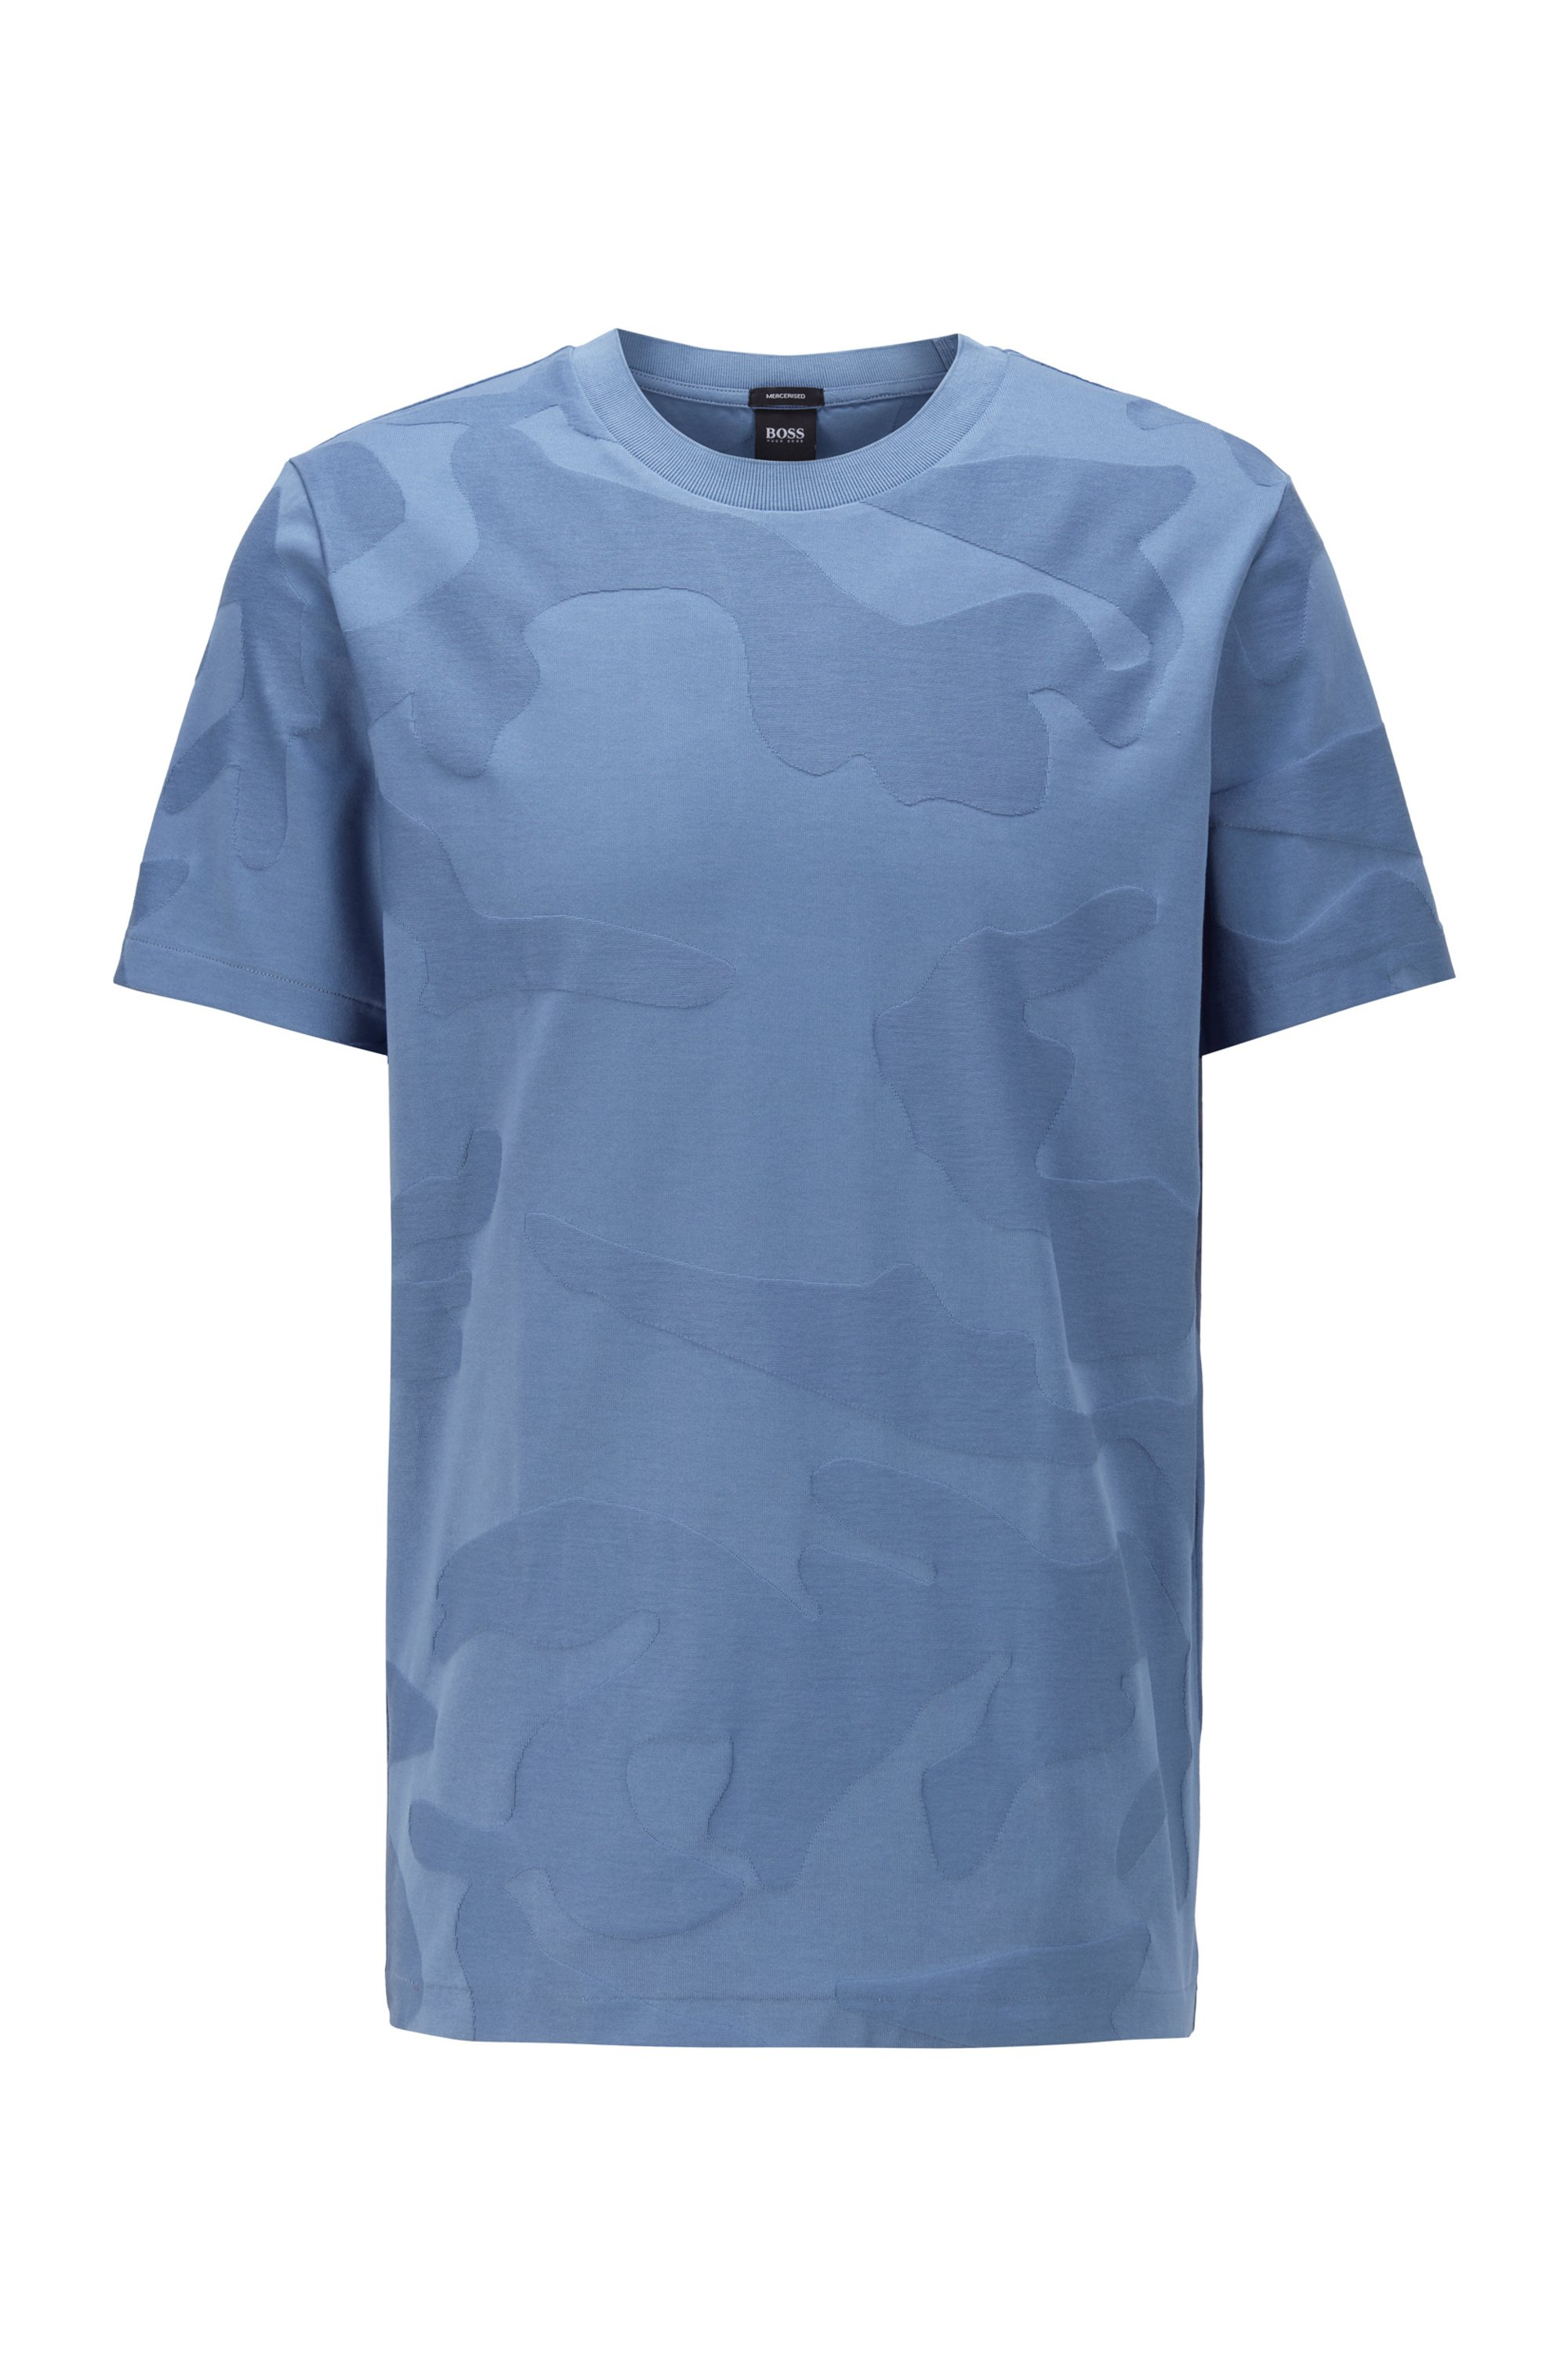 Mercerised-cotton T-shirt in camouflage-pattern jacquard, Light Blue